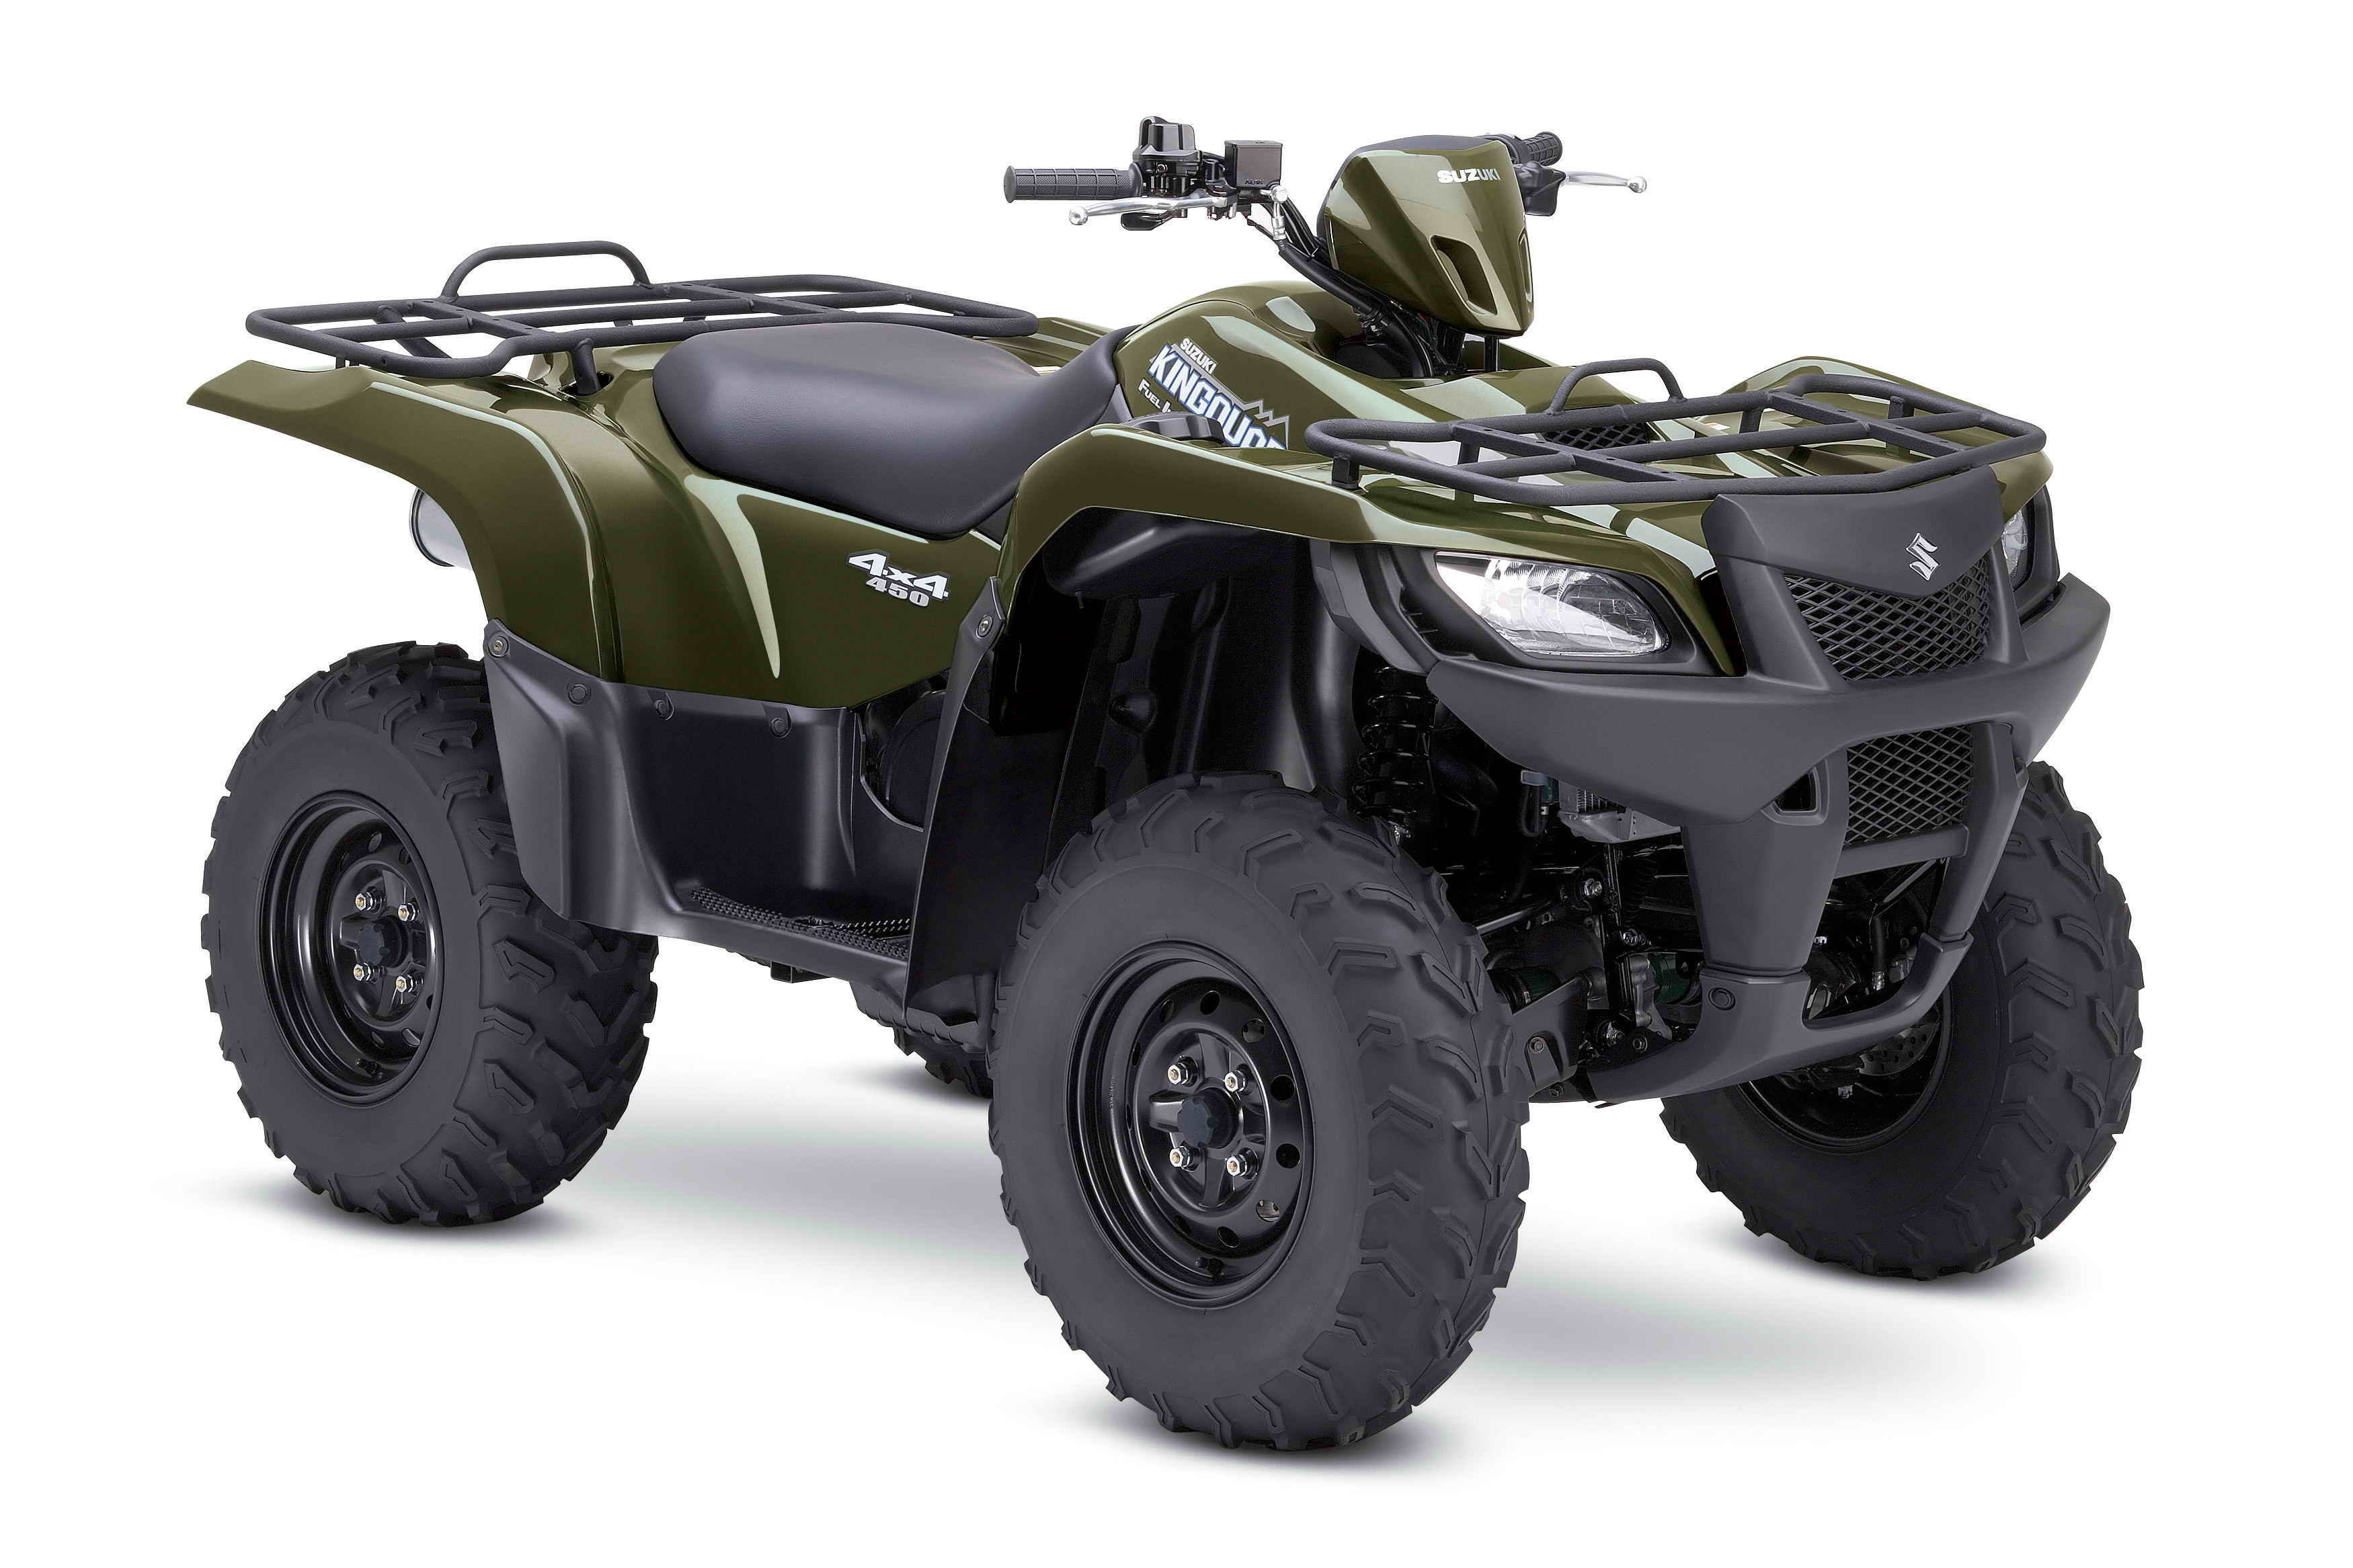 2007 suzuki kingquad 450 4x4 review top speed. Black Bedroom Furniture Sets. Home Design Ideas